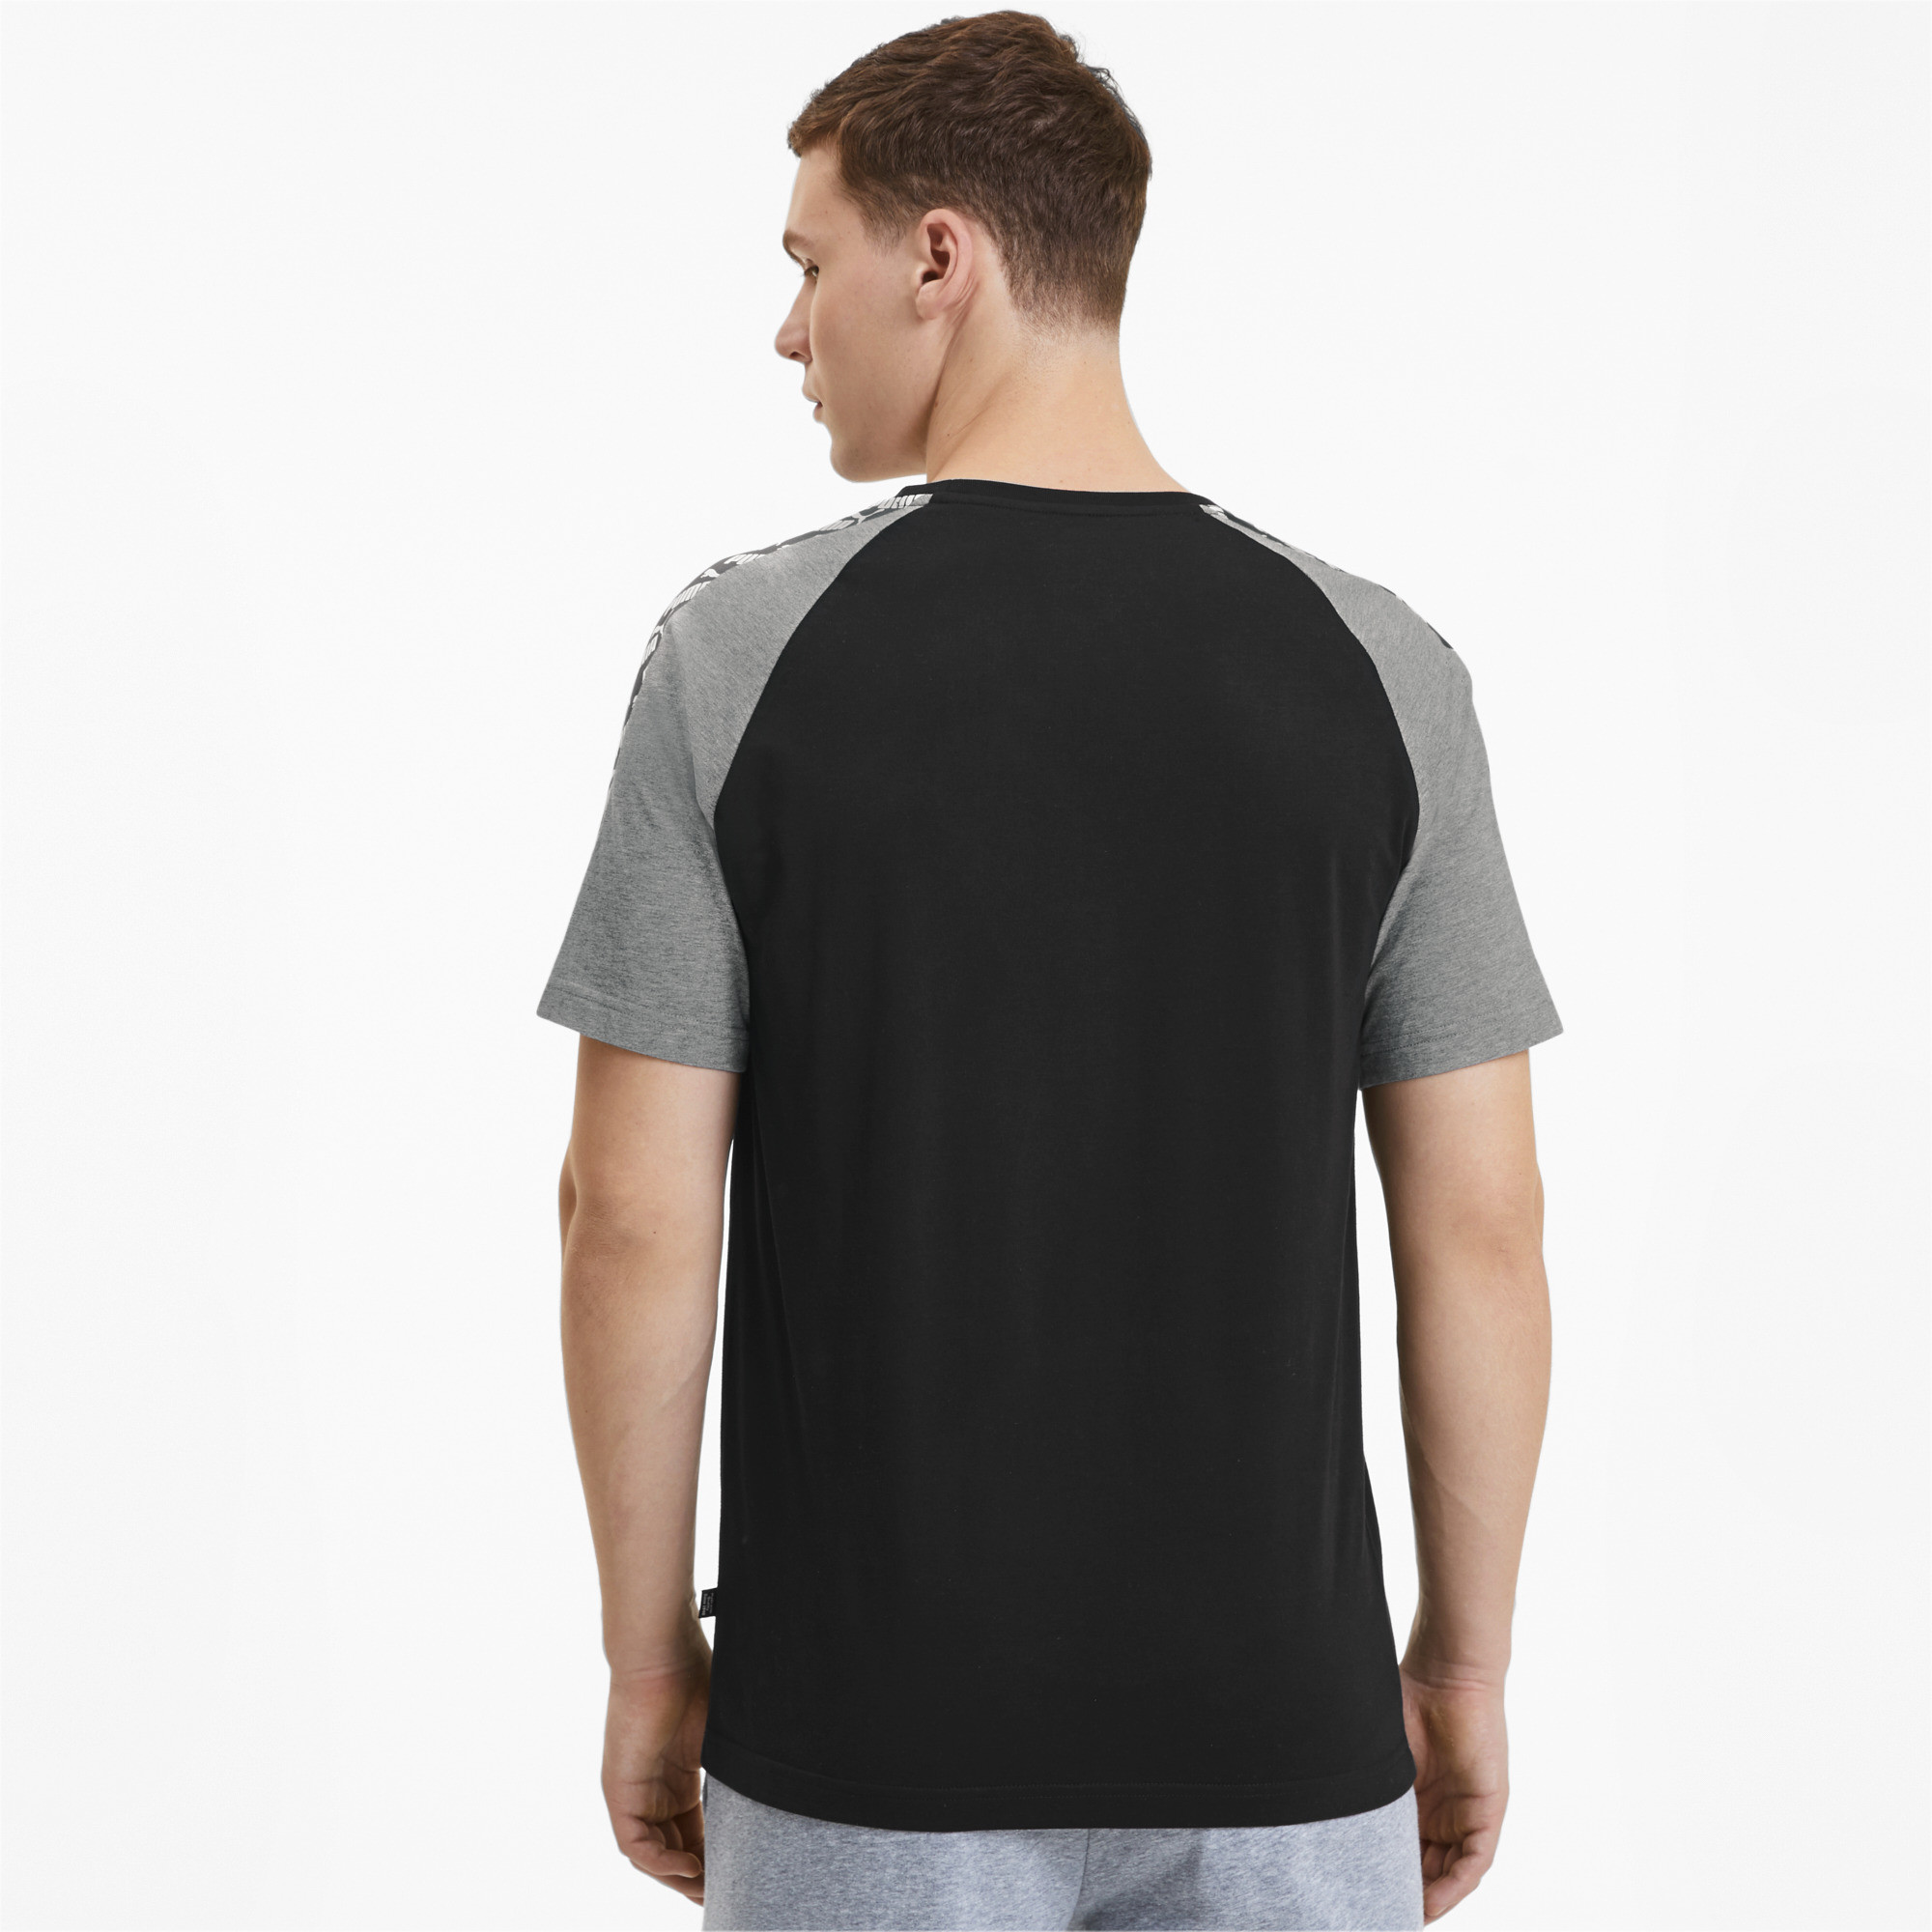 PUMA-Amplified-Men-039-s-Raglan-Tee-Men-Tee-Basics thumbnail 13